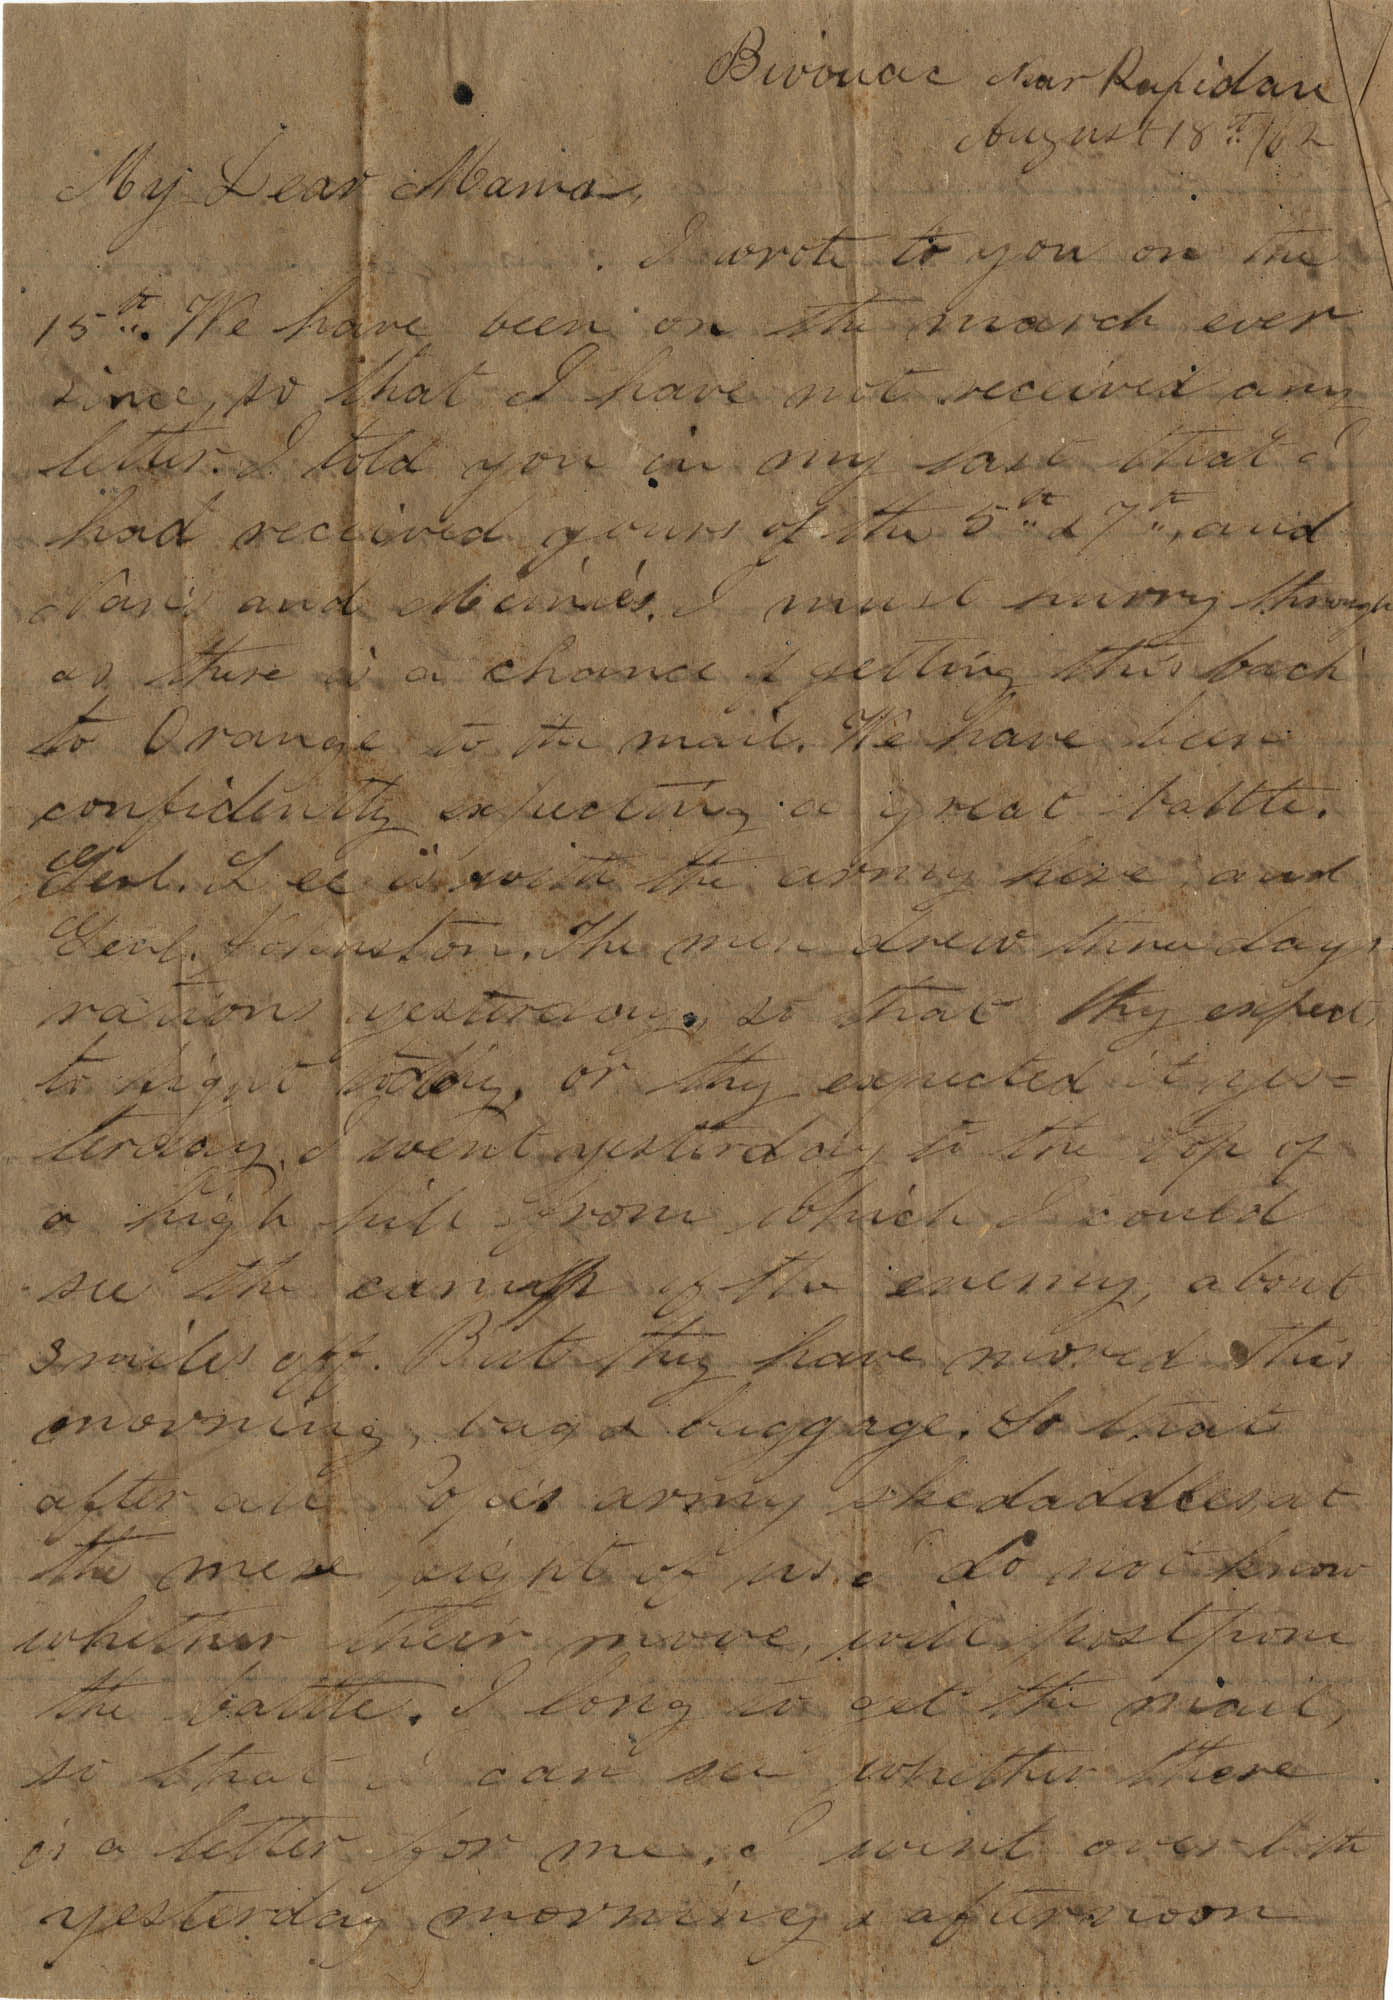 068. Willis Keith to Anna Bell Keith -- August 18, 1862